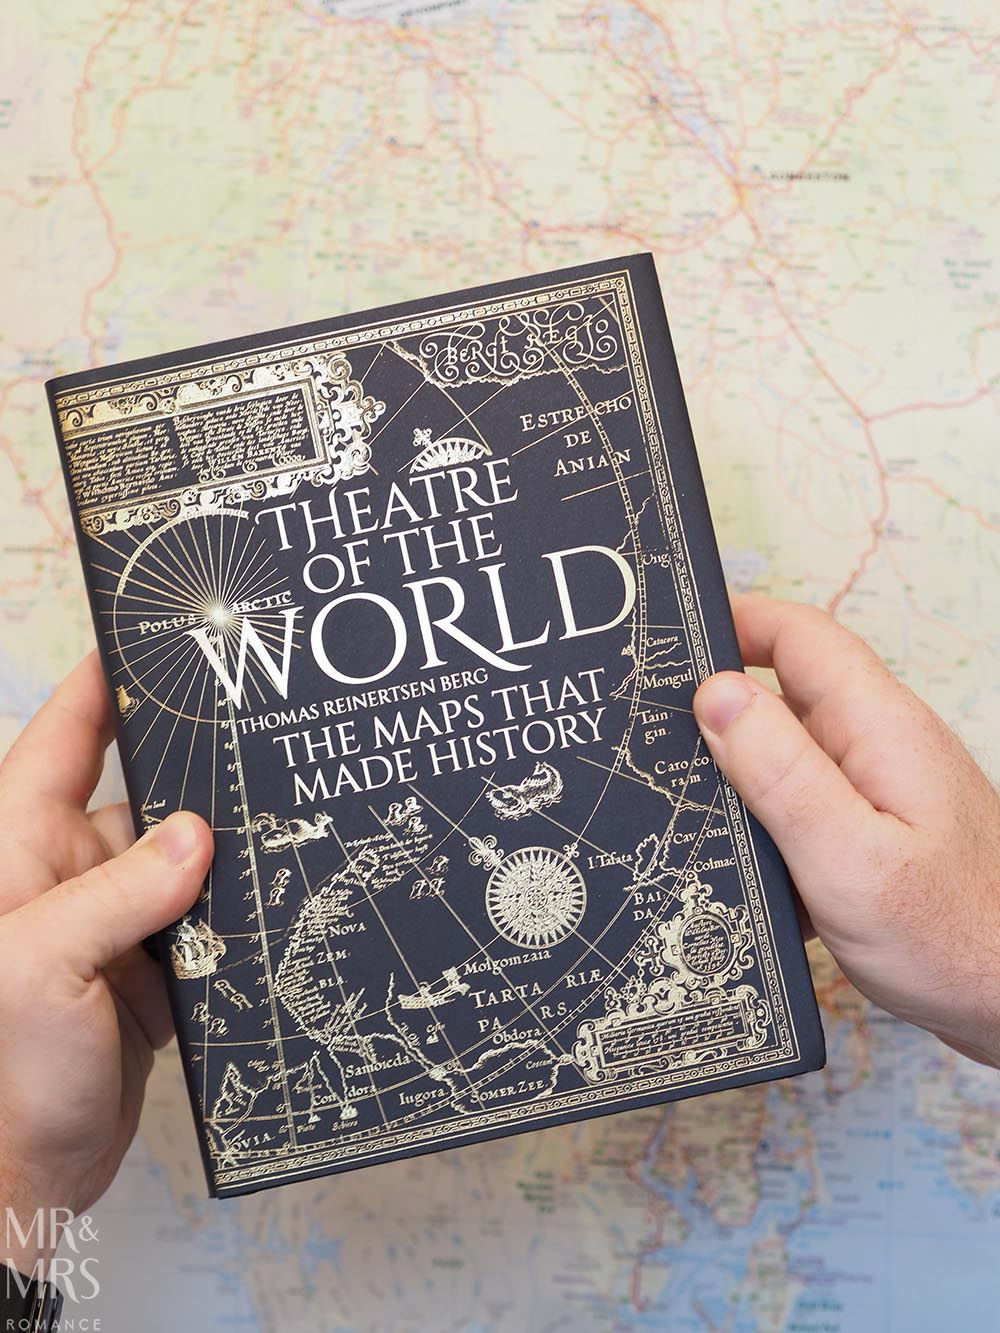 Good book Christmas gift - Theatre of the World maps